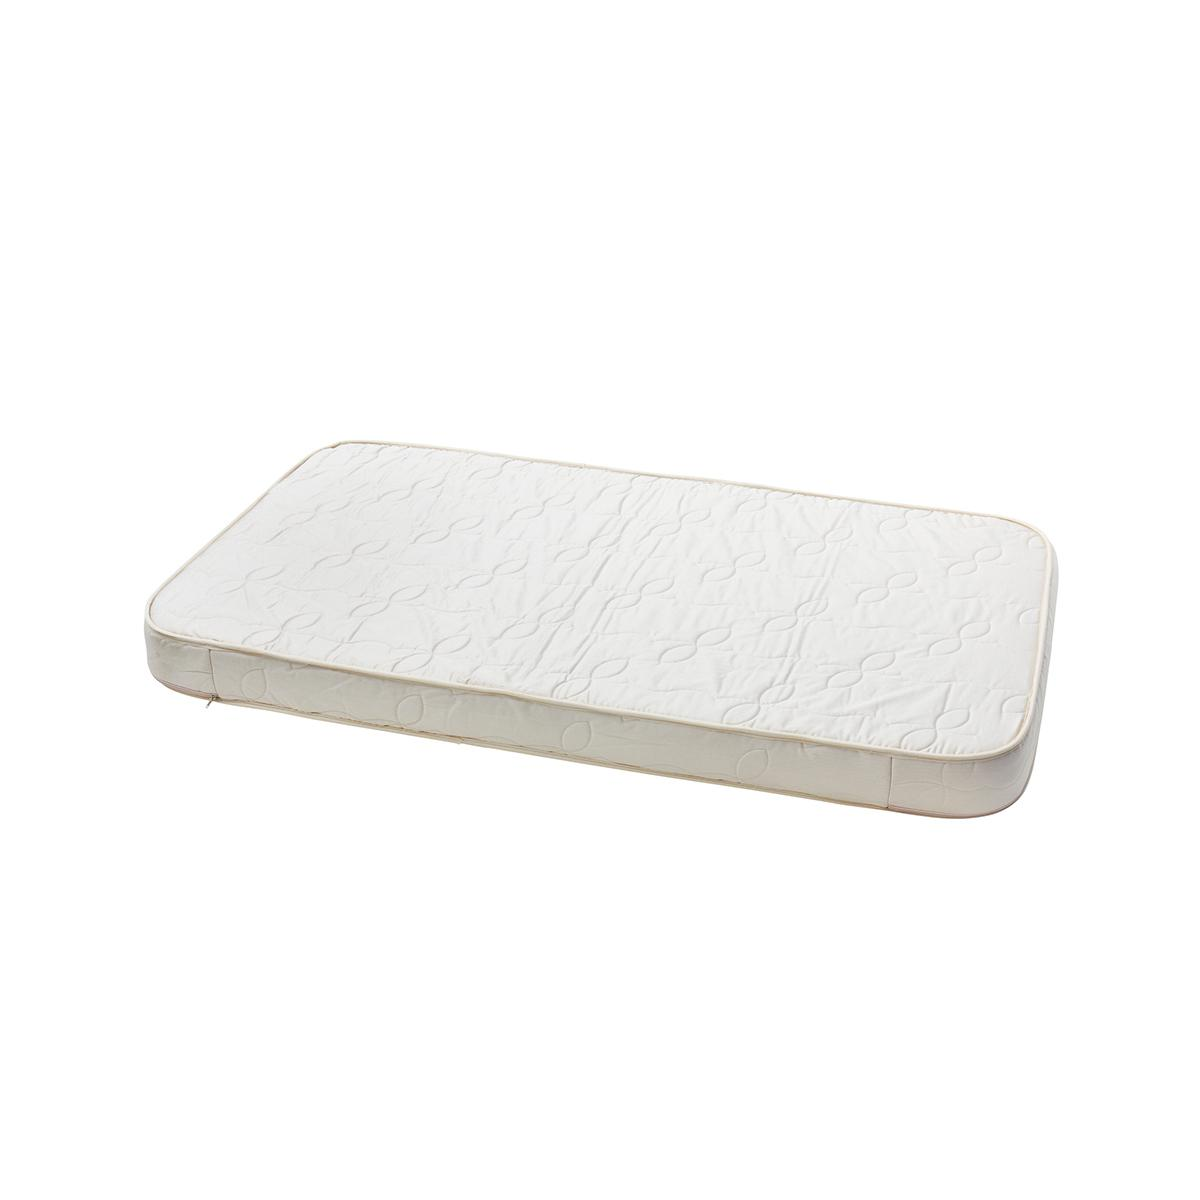 Matelas 90x160cm WOOD Oliver Furniture